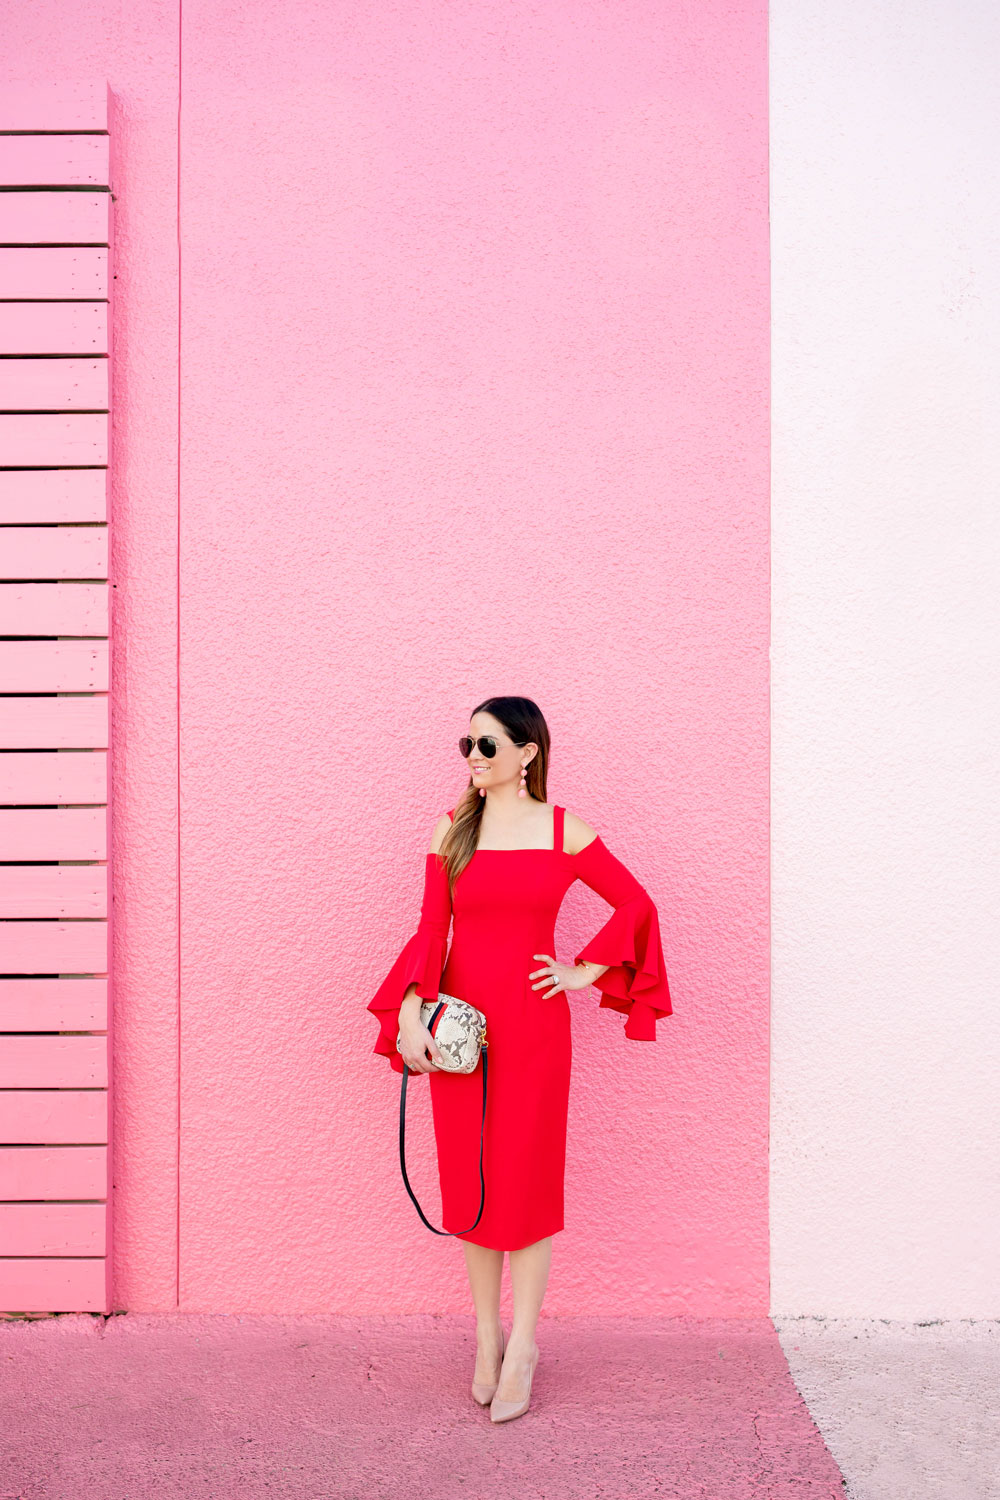 Houston Pink Wall